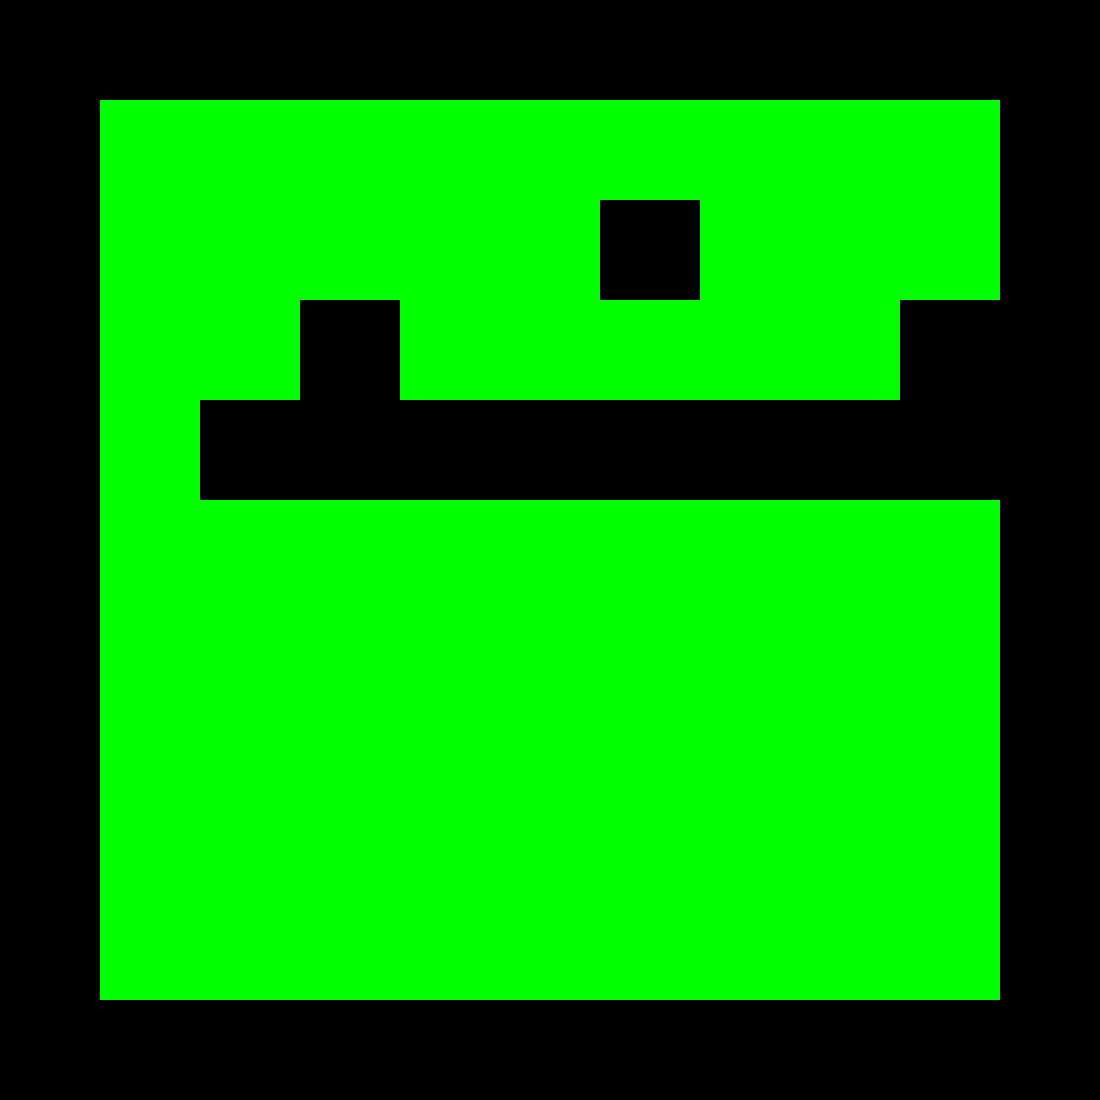 logo for t0tallyKy1e (Kyle Demers's alias as a game developer)